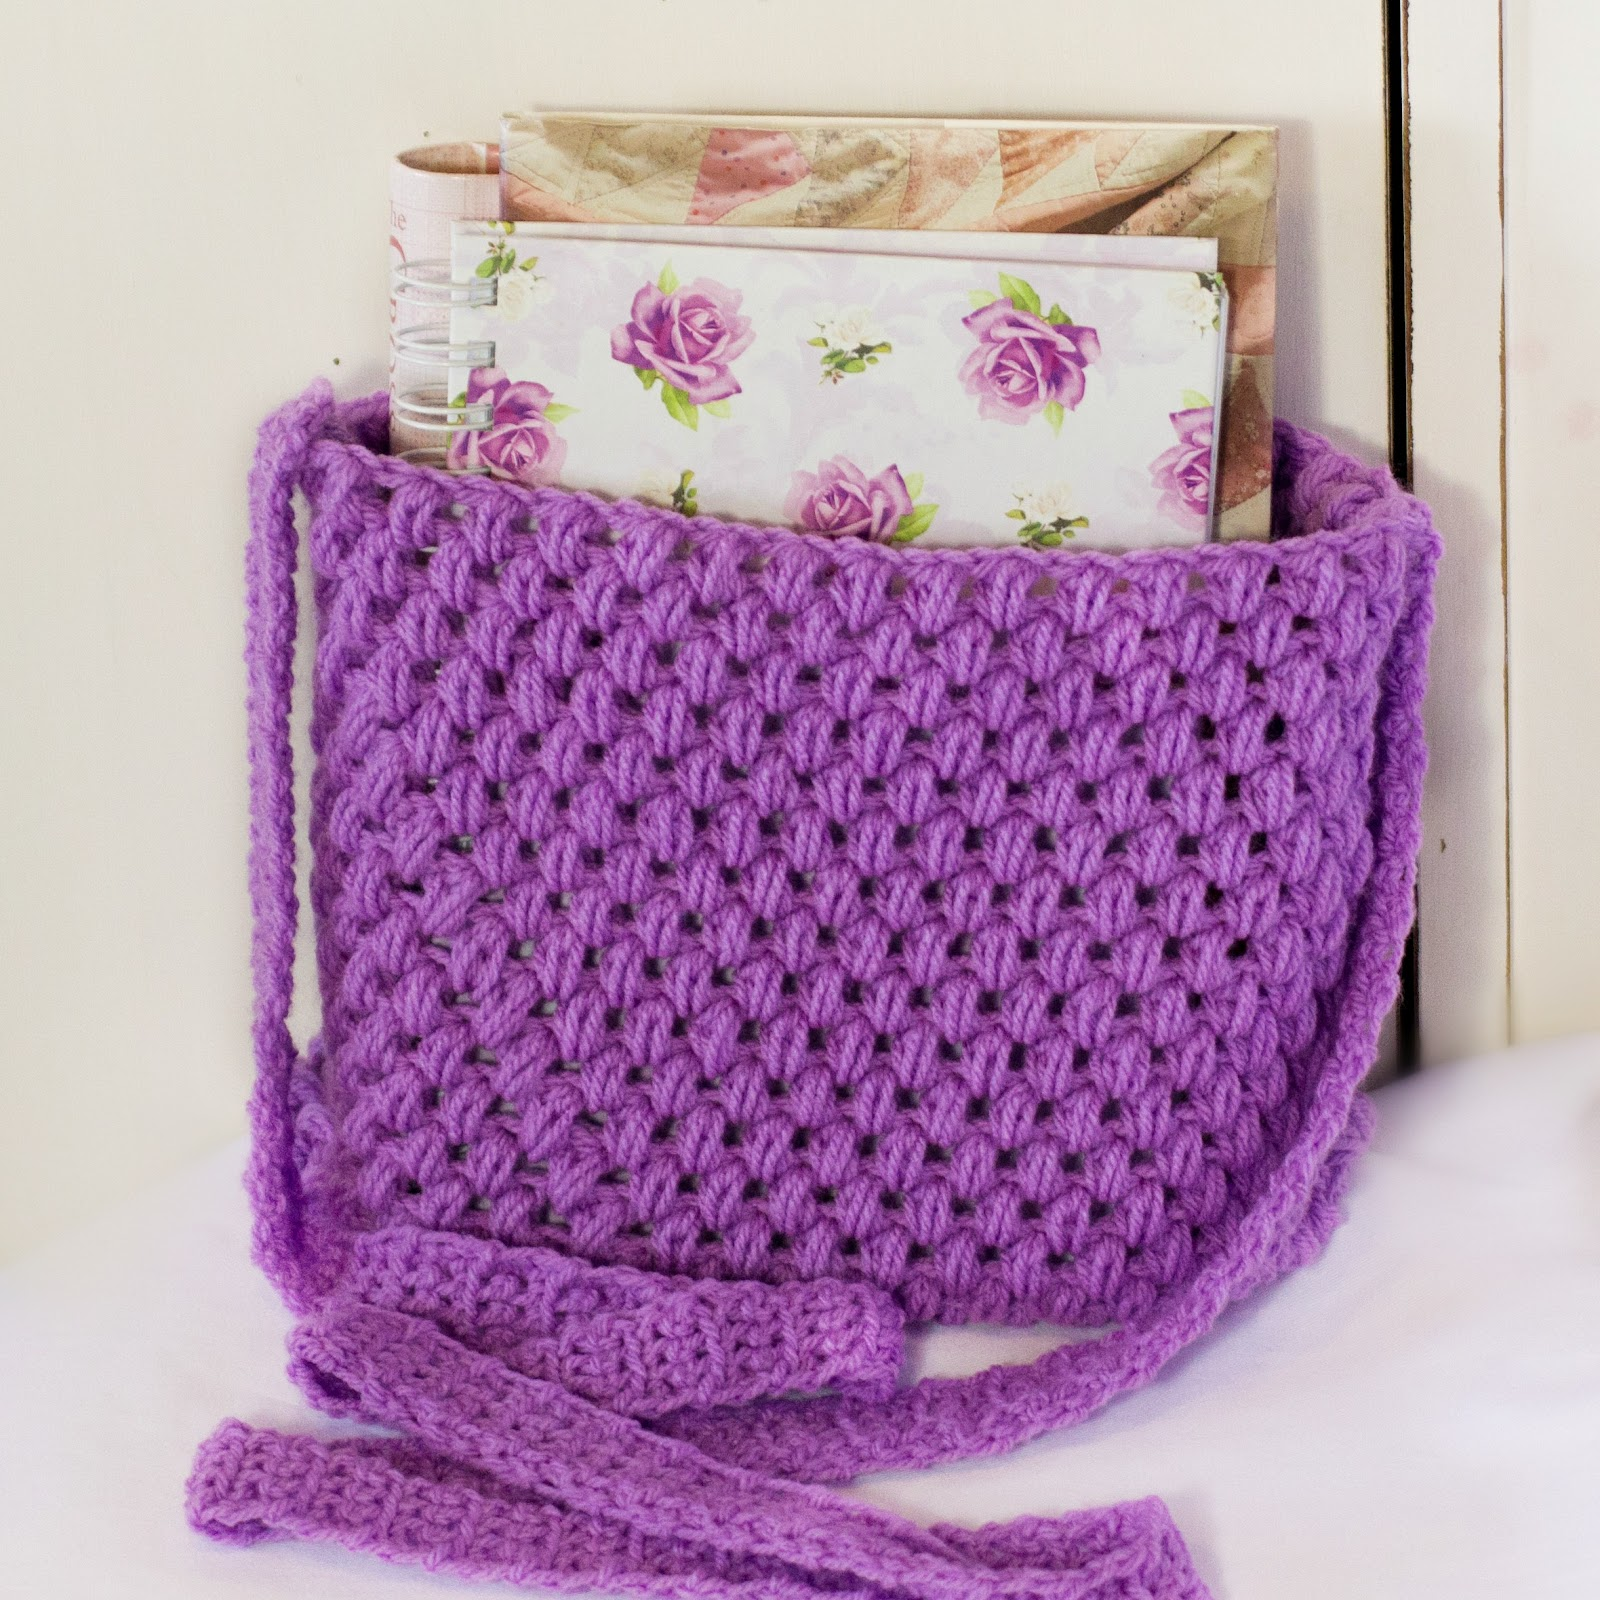 Crochet Bag Pattern : ... Craft, Crochet, Create: Out and About ~ Easy Tote Bag Crochet Pattern